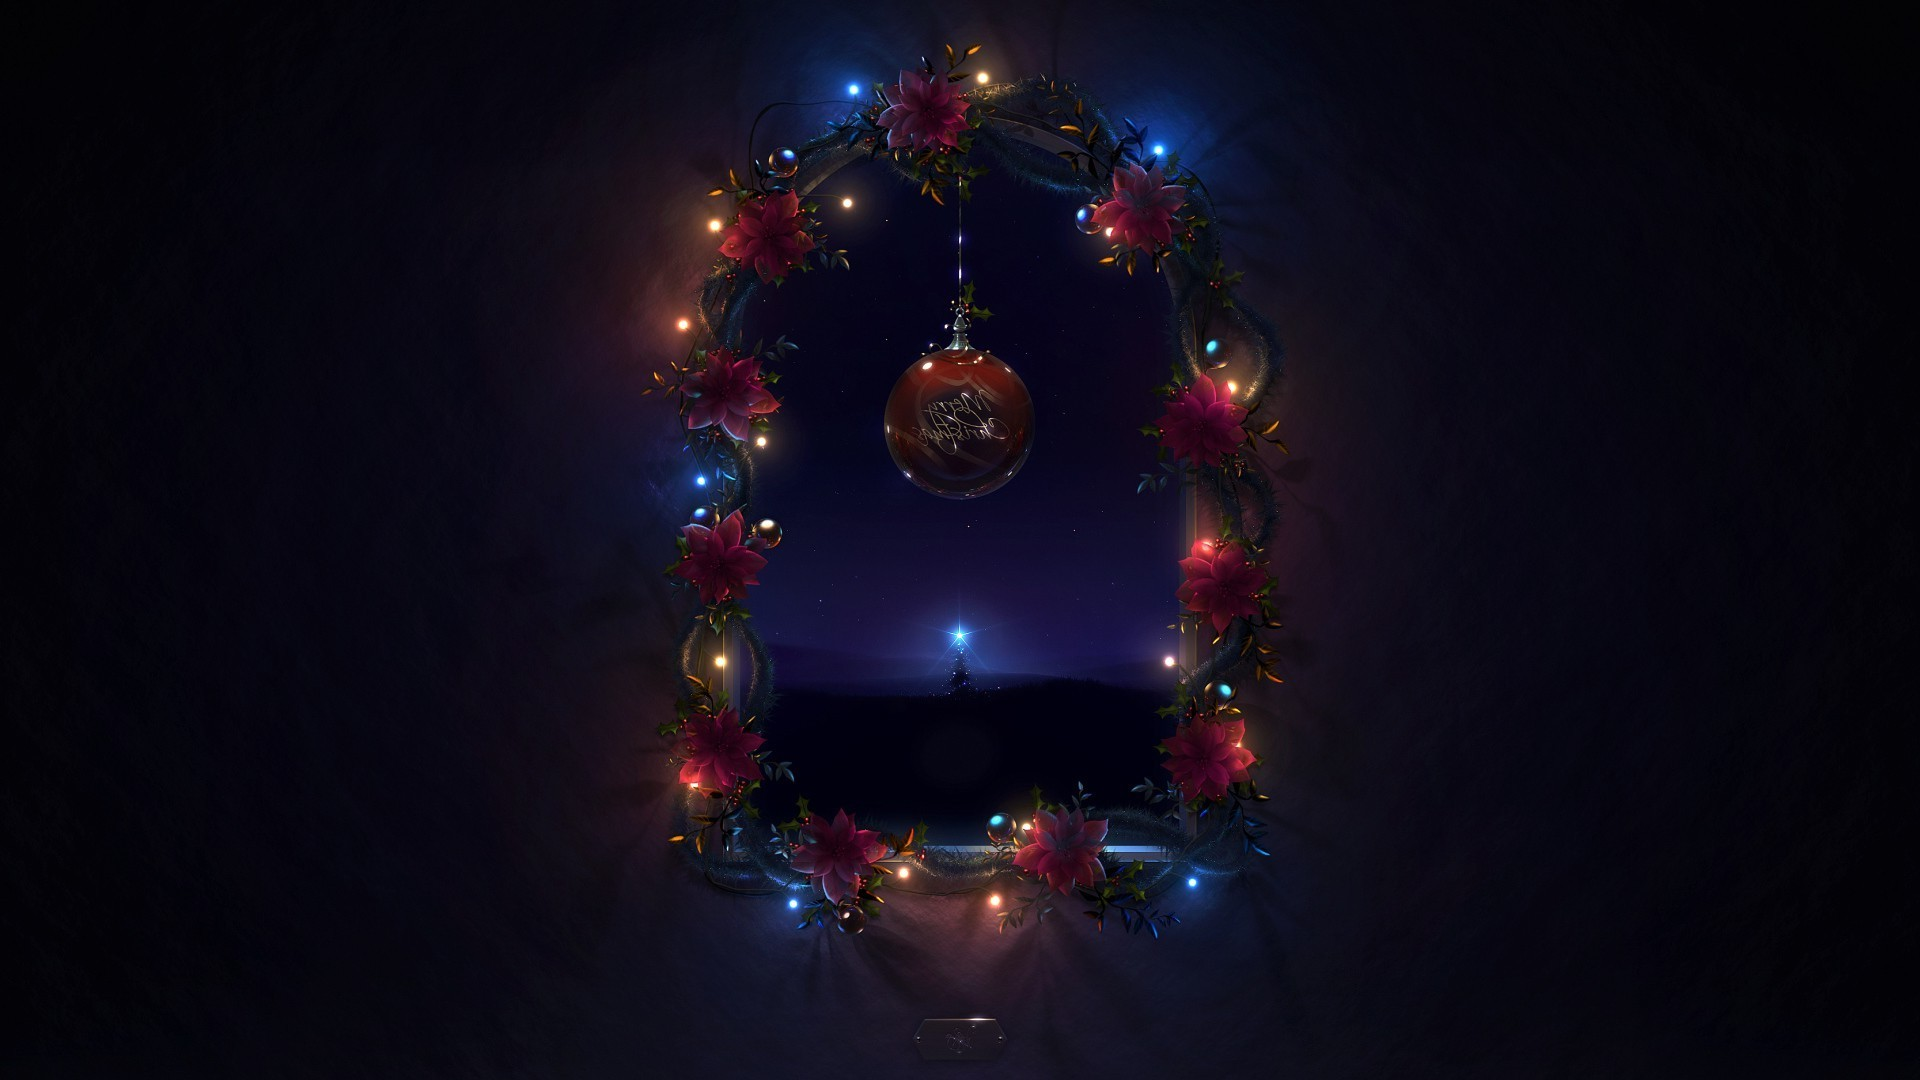 new year christmas celebration shining decoration light winter ball sphere bright dark